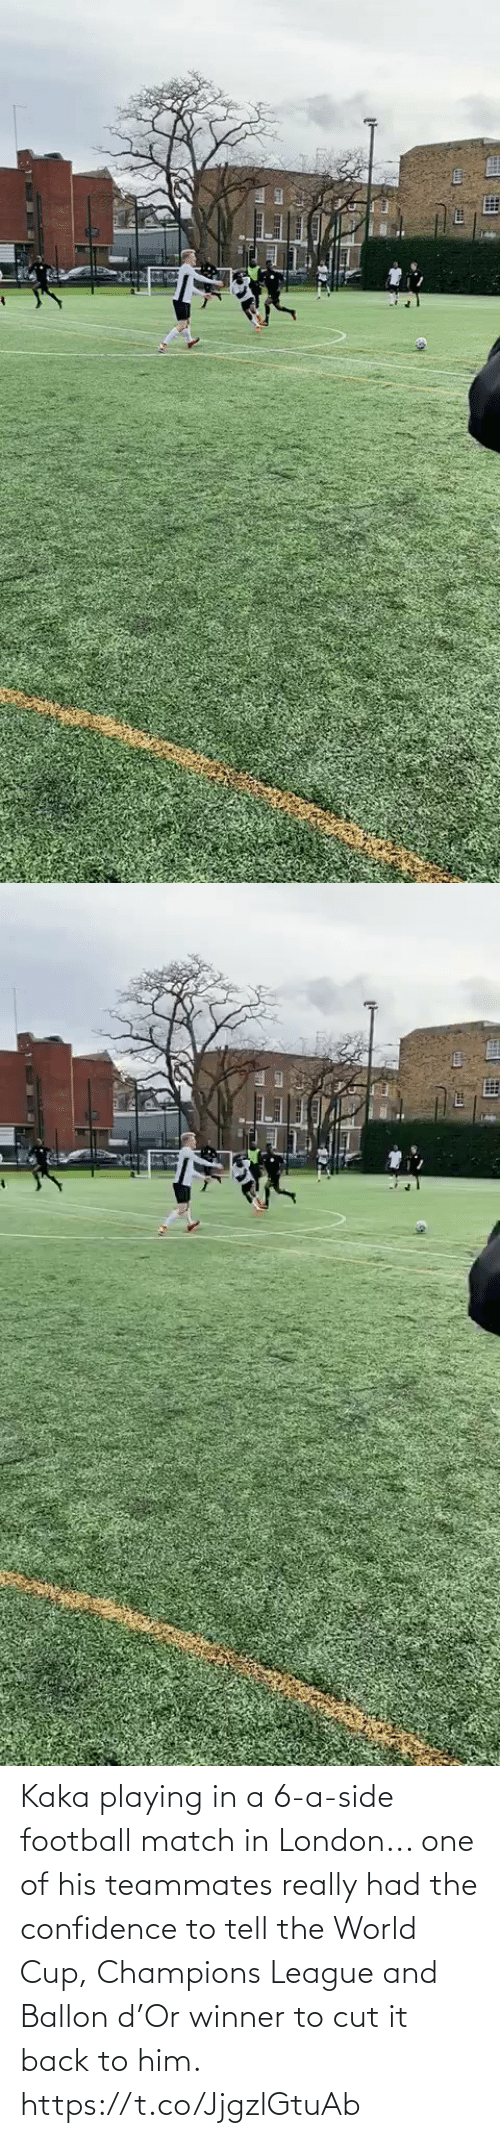 playing: Kaka playing in a 6-a-side football match in London... one of his teammates really had the confidence to tell the World Cup, Champions League and Ballon d'Or winner to cut it back to him.   https://t.co/JjgzlGtuAb